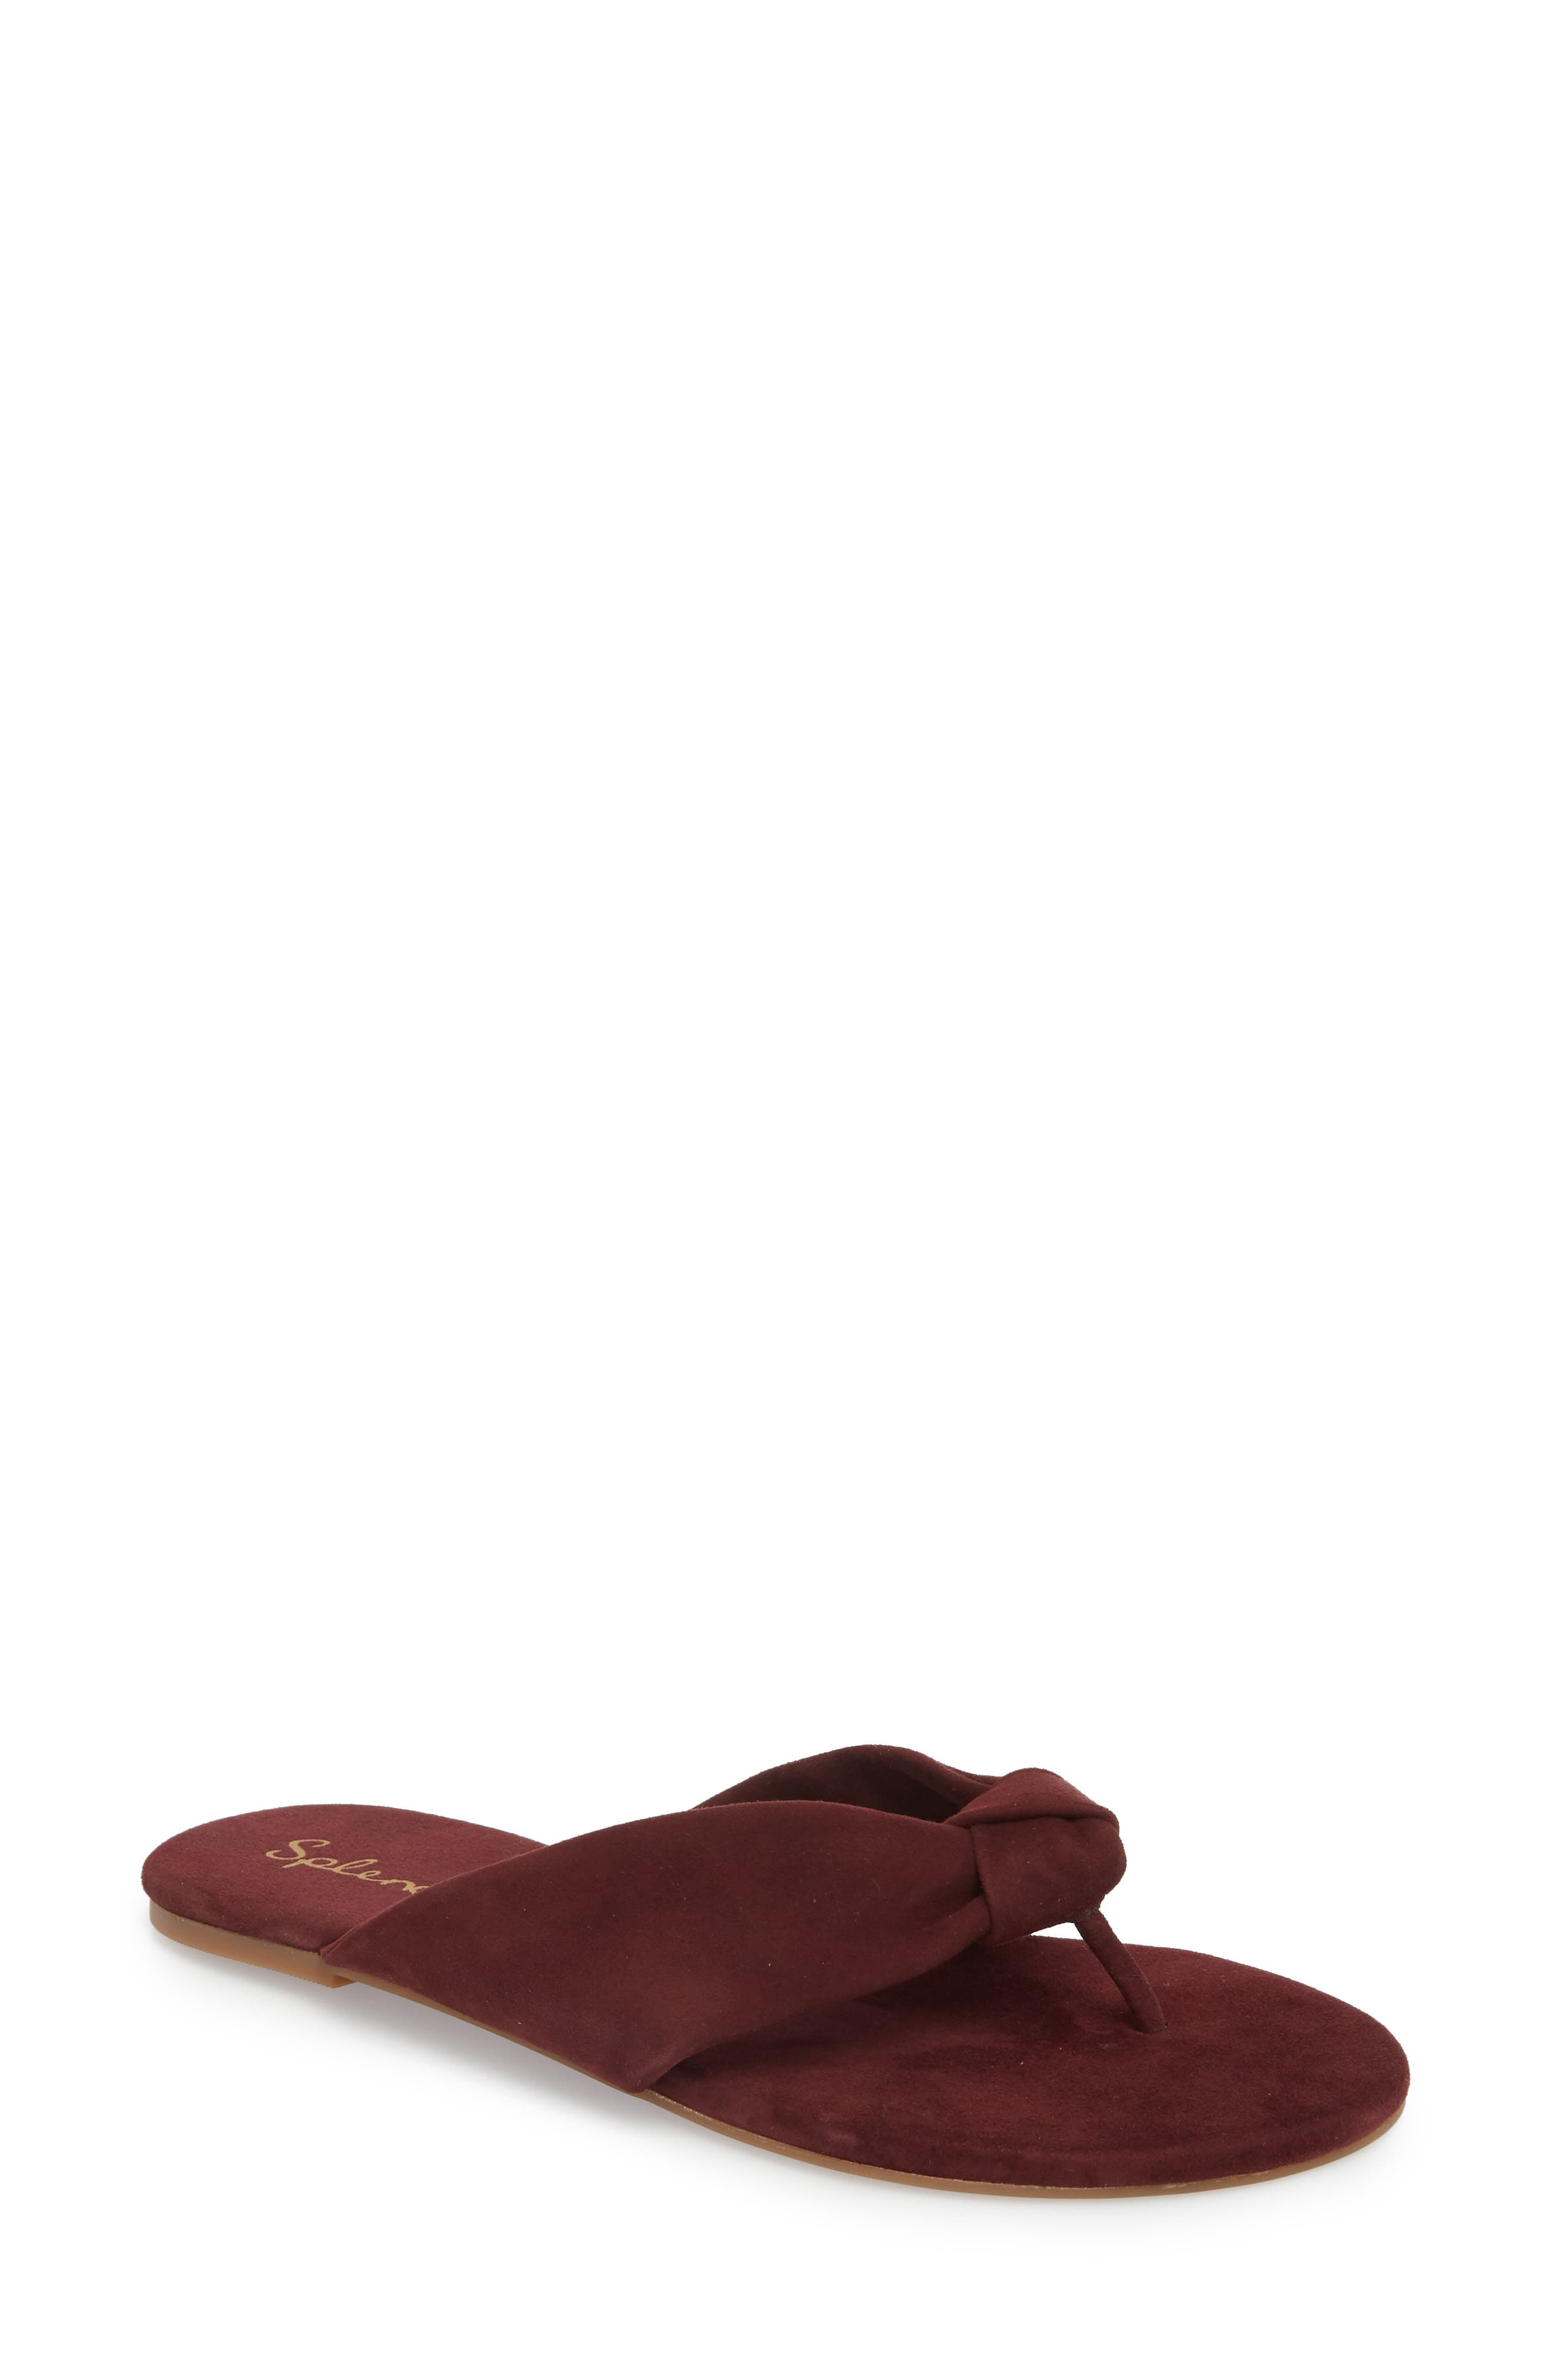 Main Image - Splendid Bridgette Knotted Flip Flop (Women)